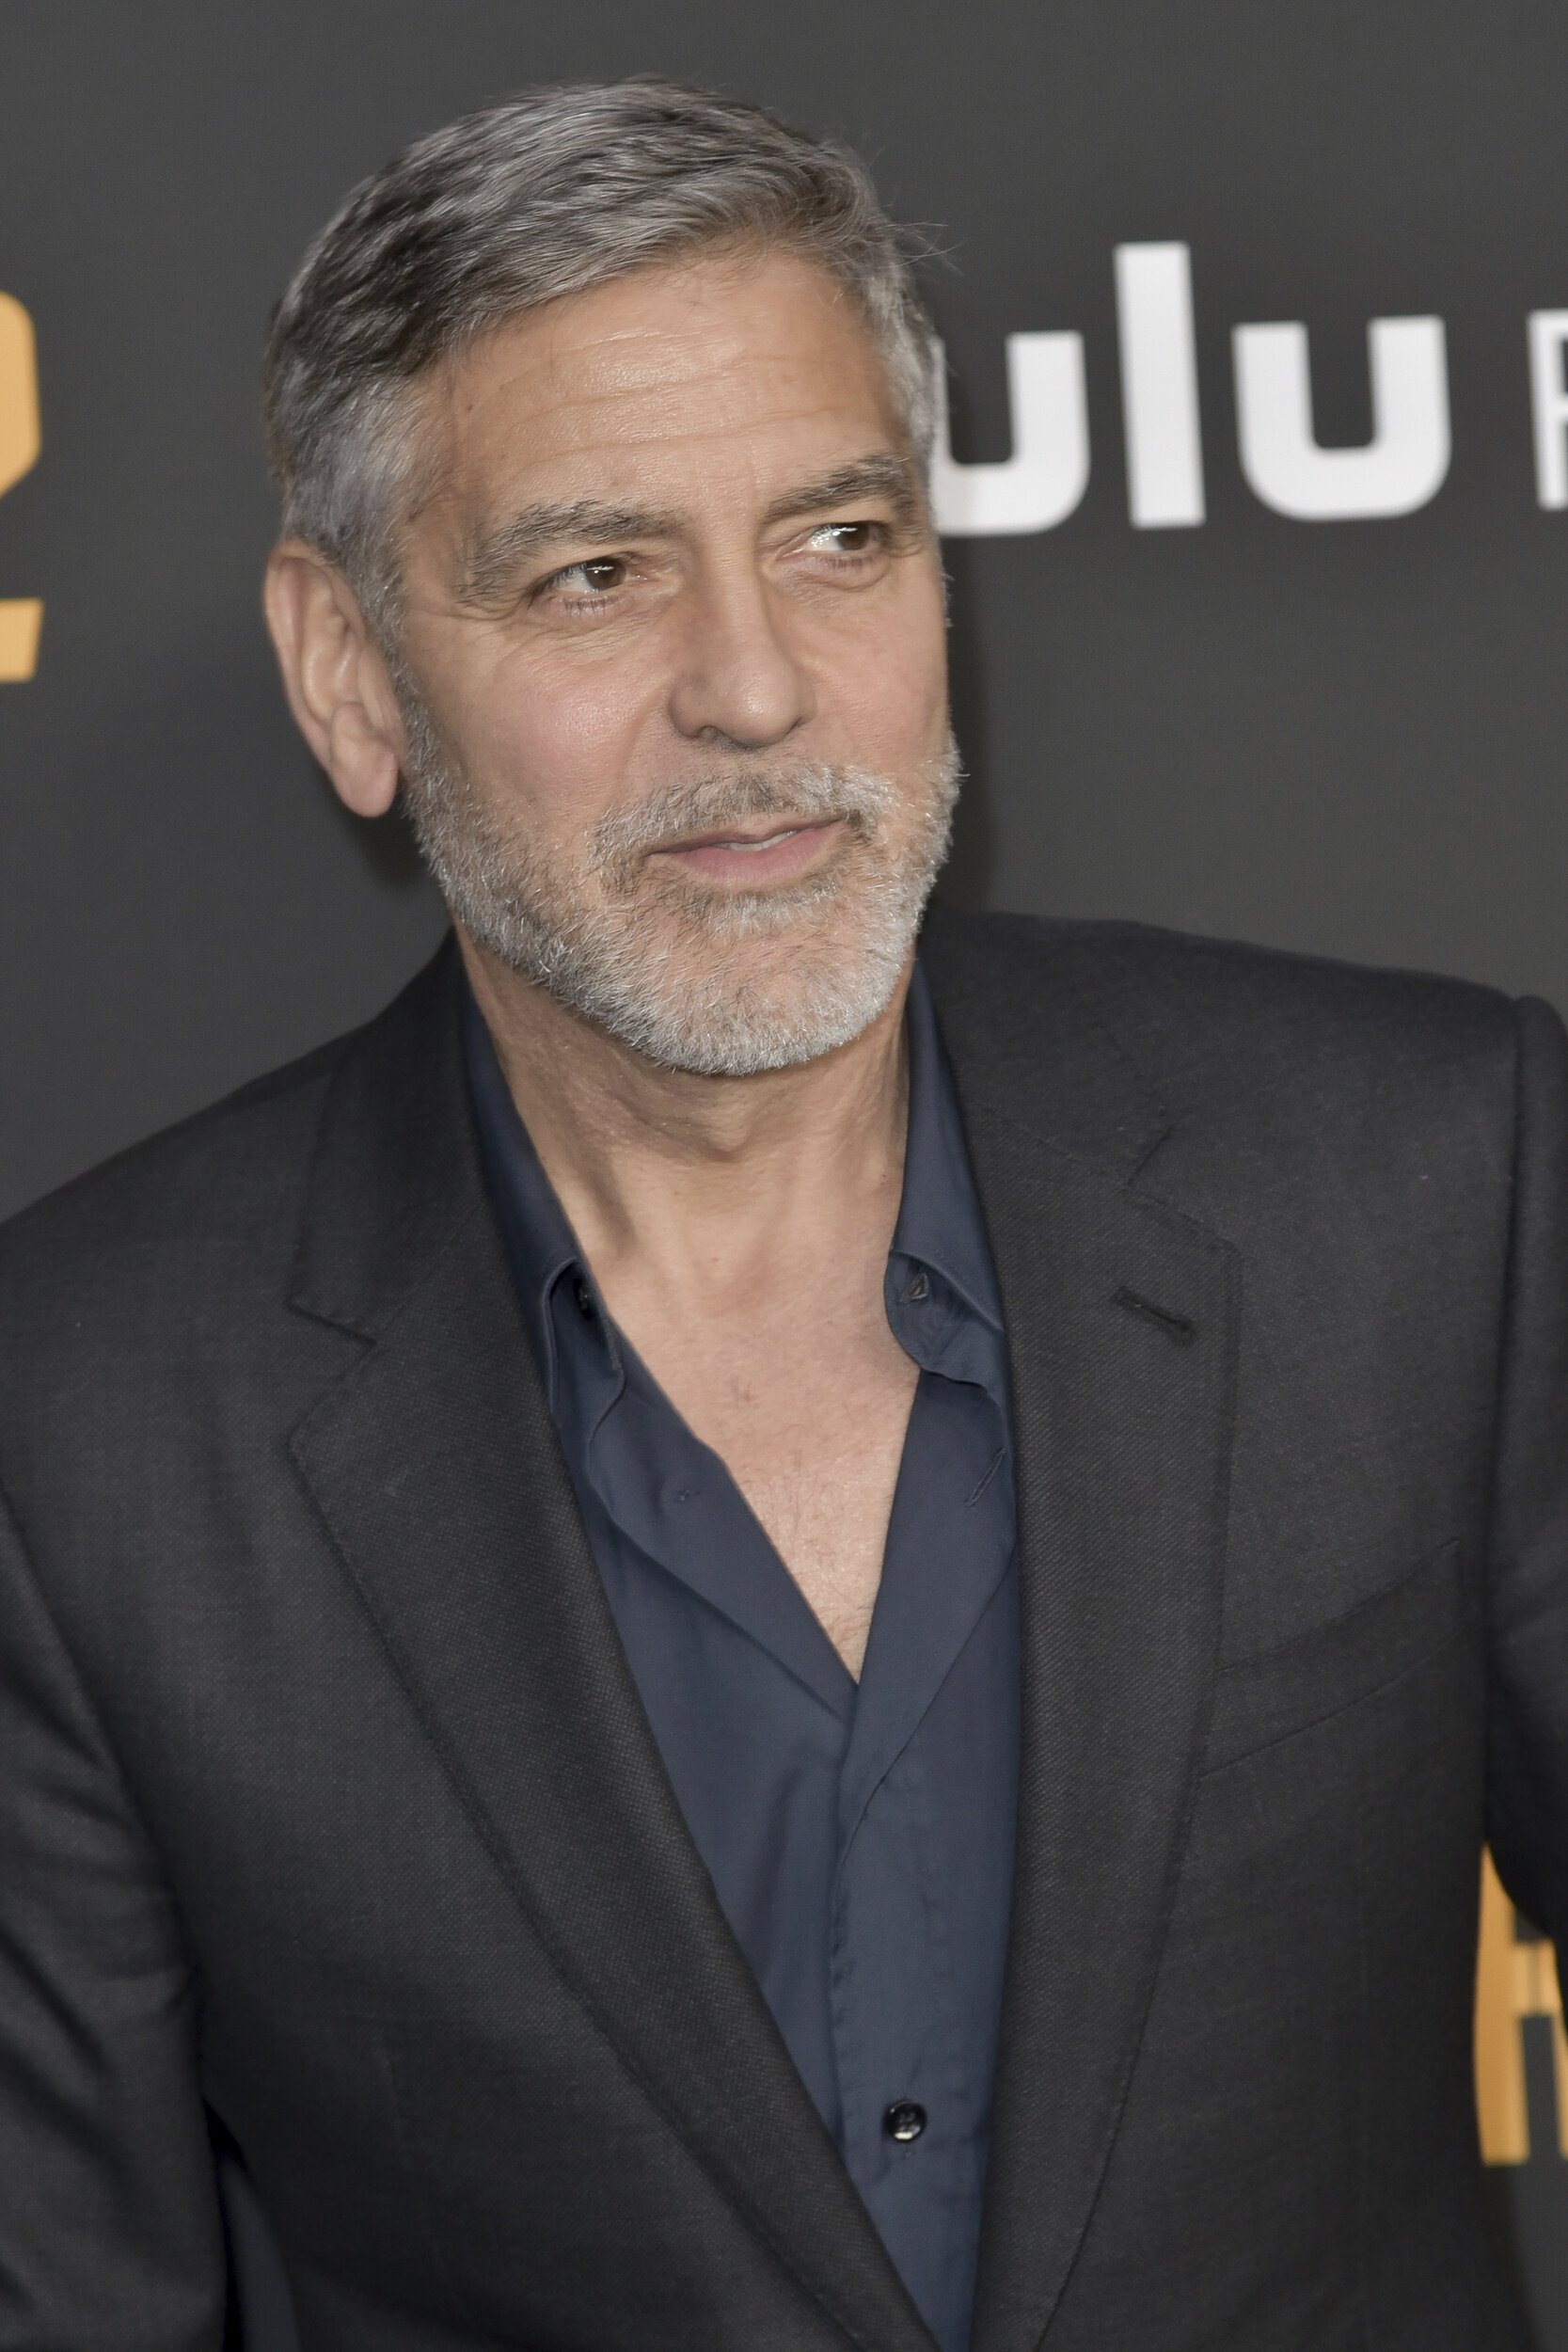 George Clooney Misfires Among LGBTQ Activists Over Brunei 'Warning Shot' Remarks